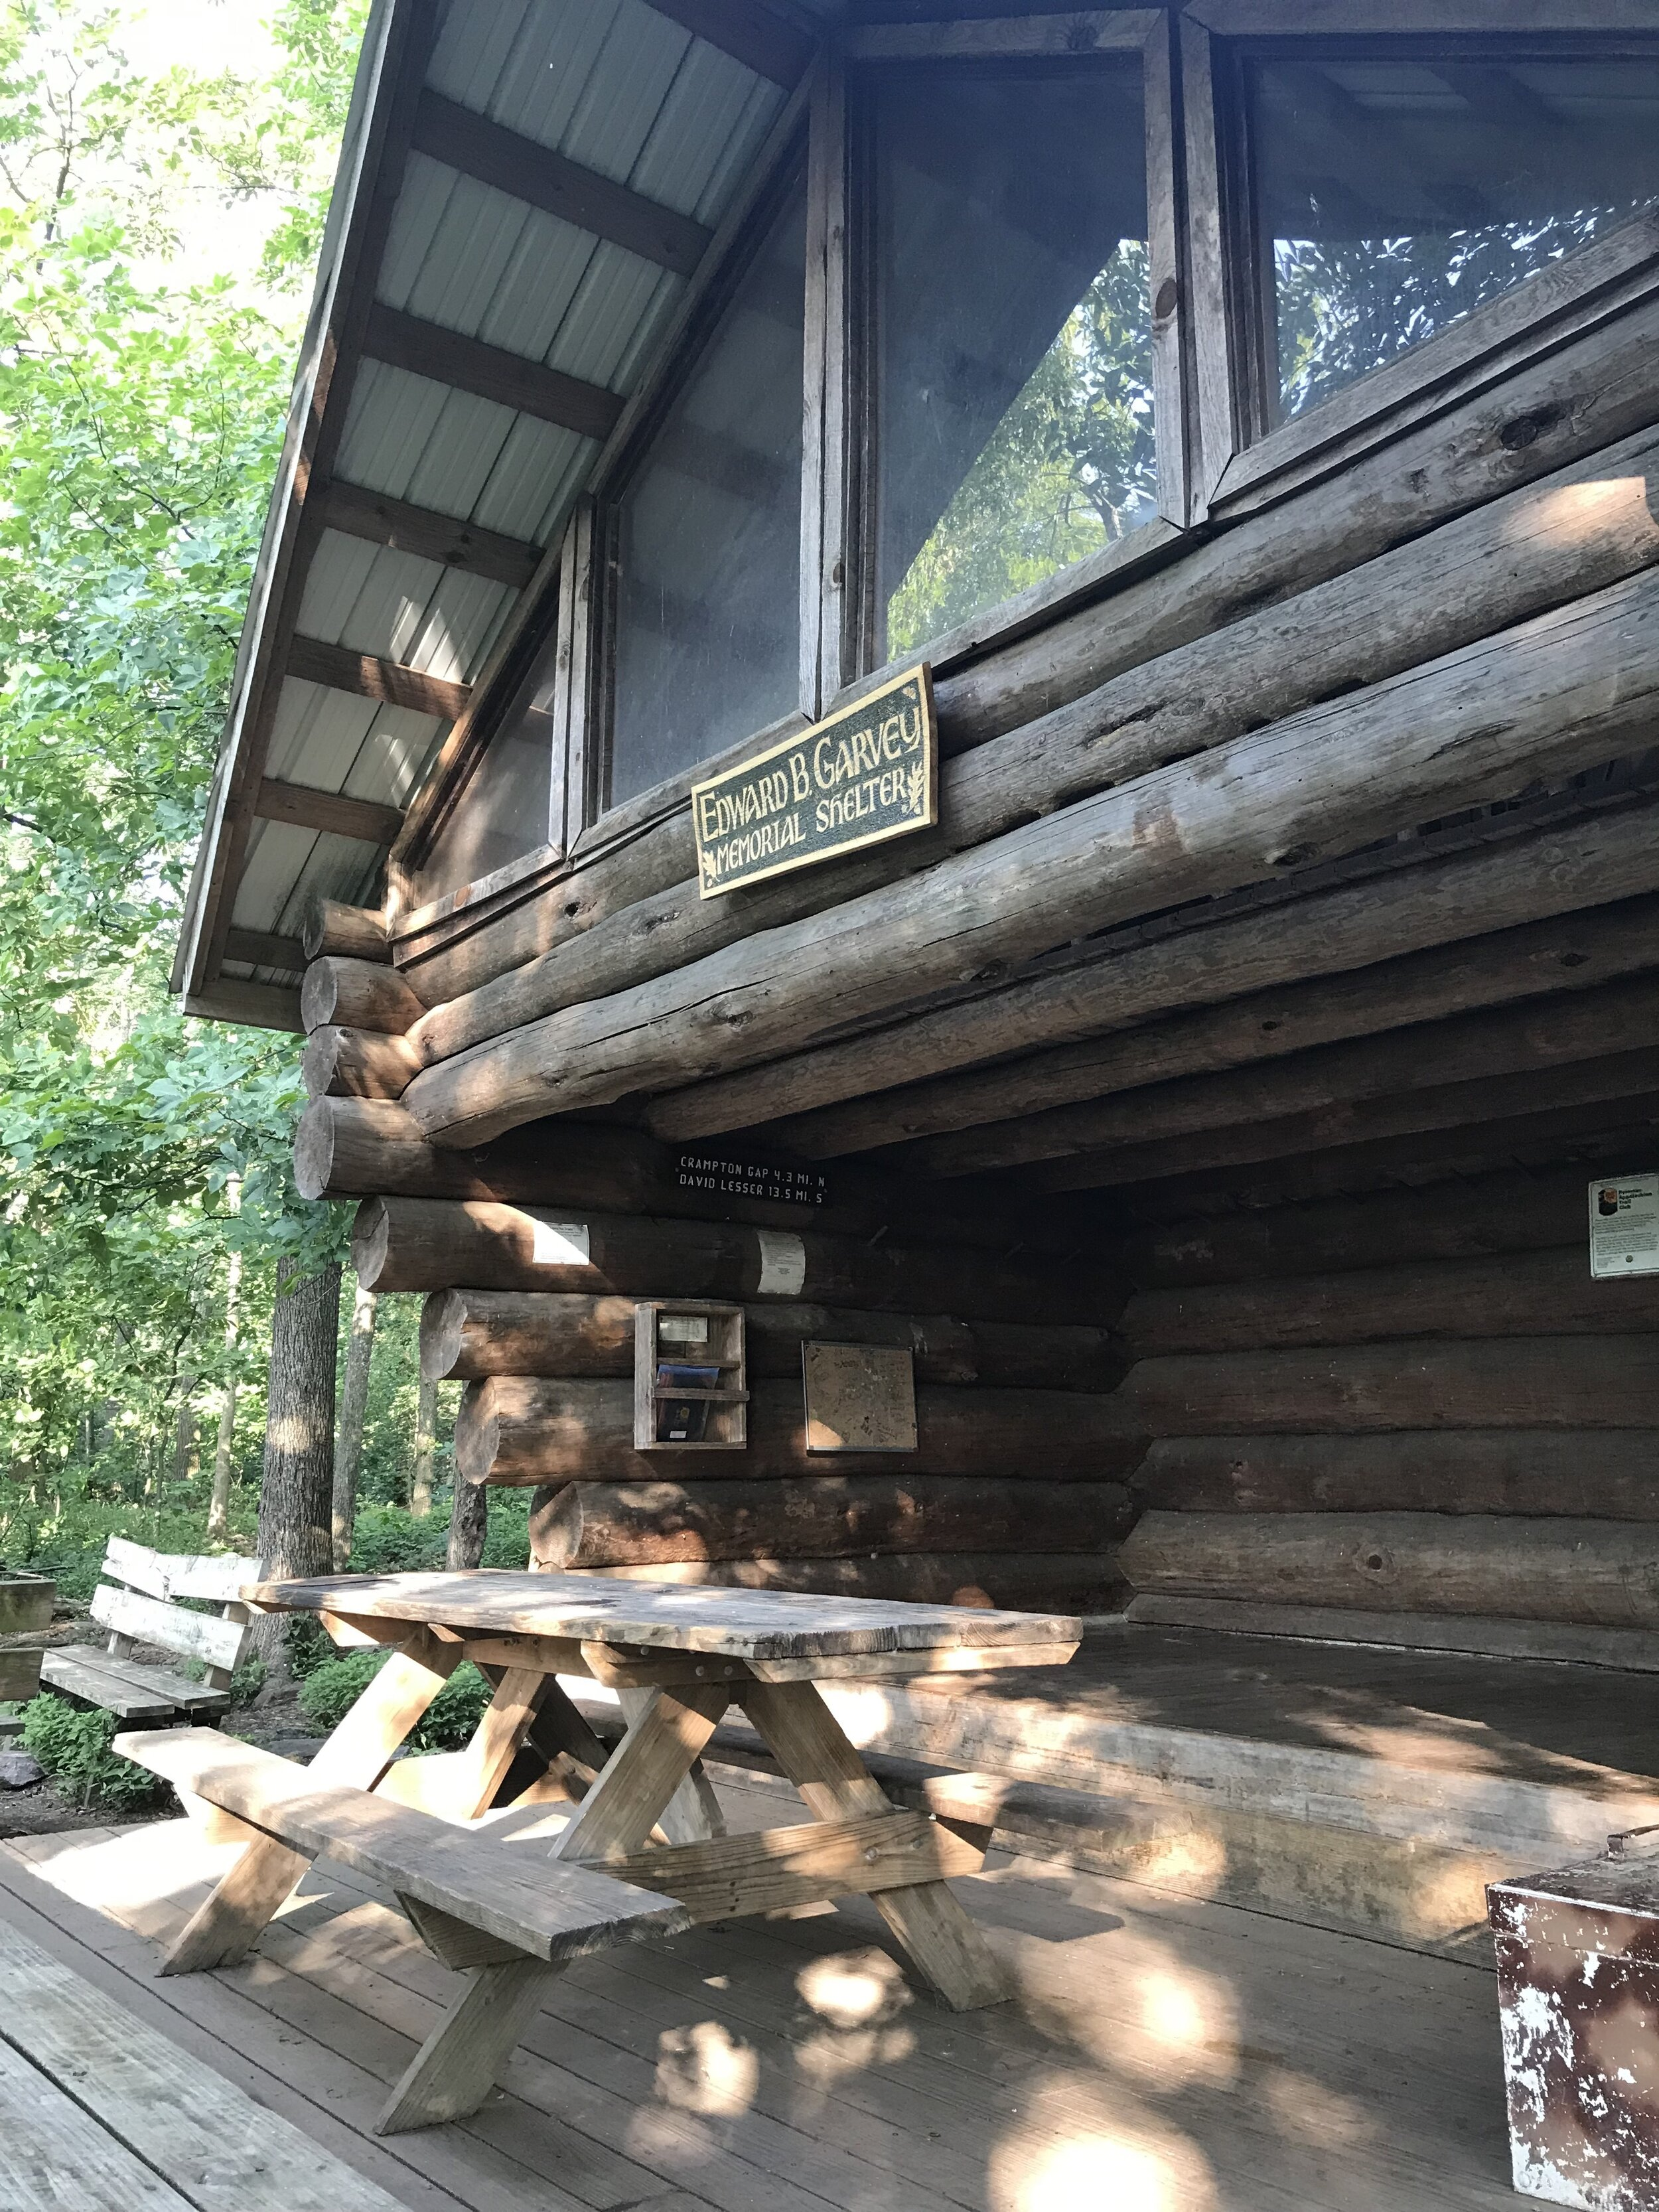 The Ed Garvey Shelter is a two-story hiking shelter just north of Harpers Ferry.